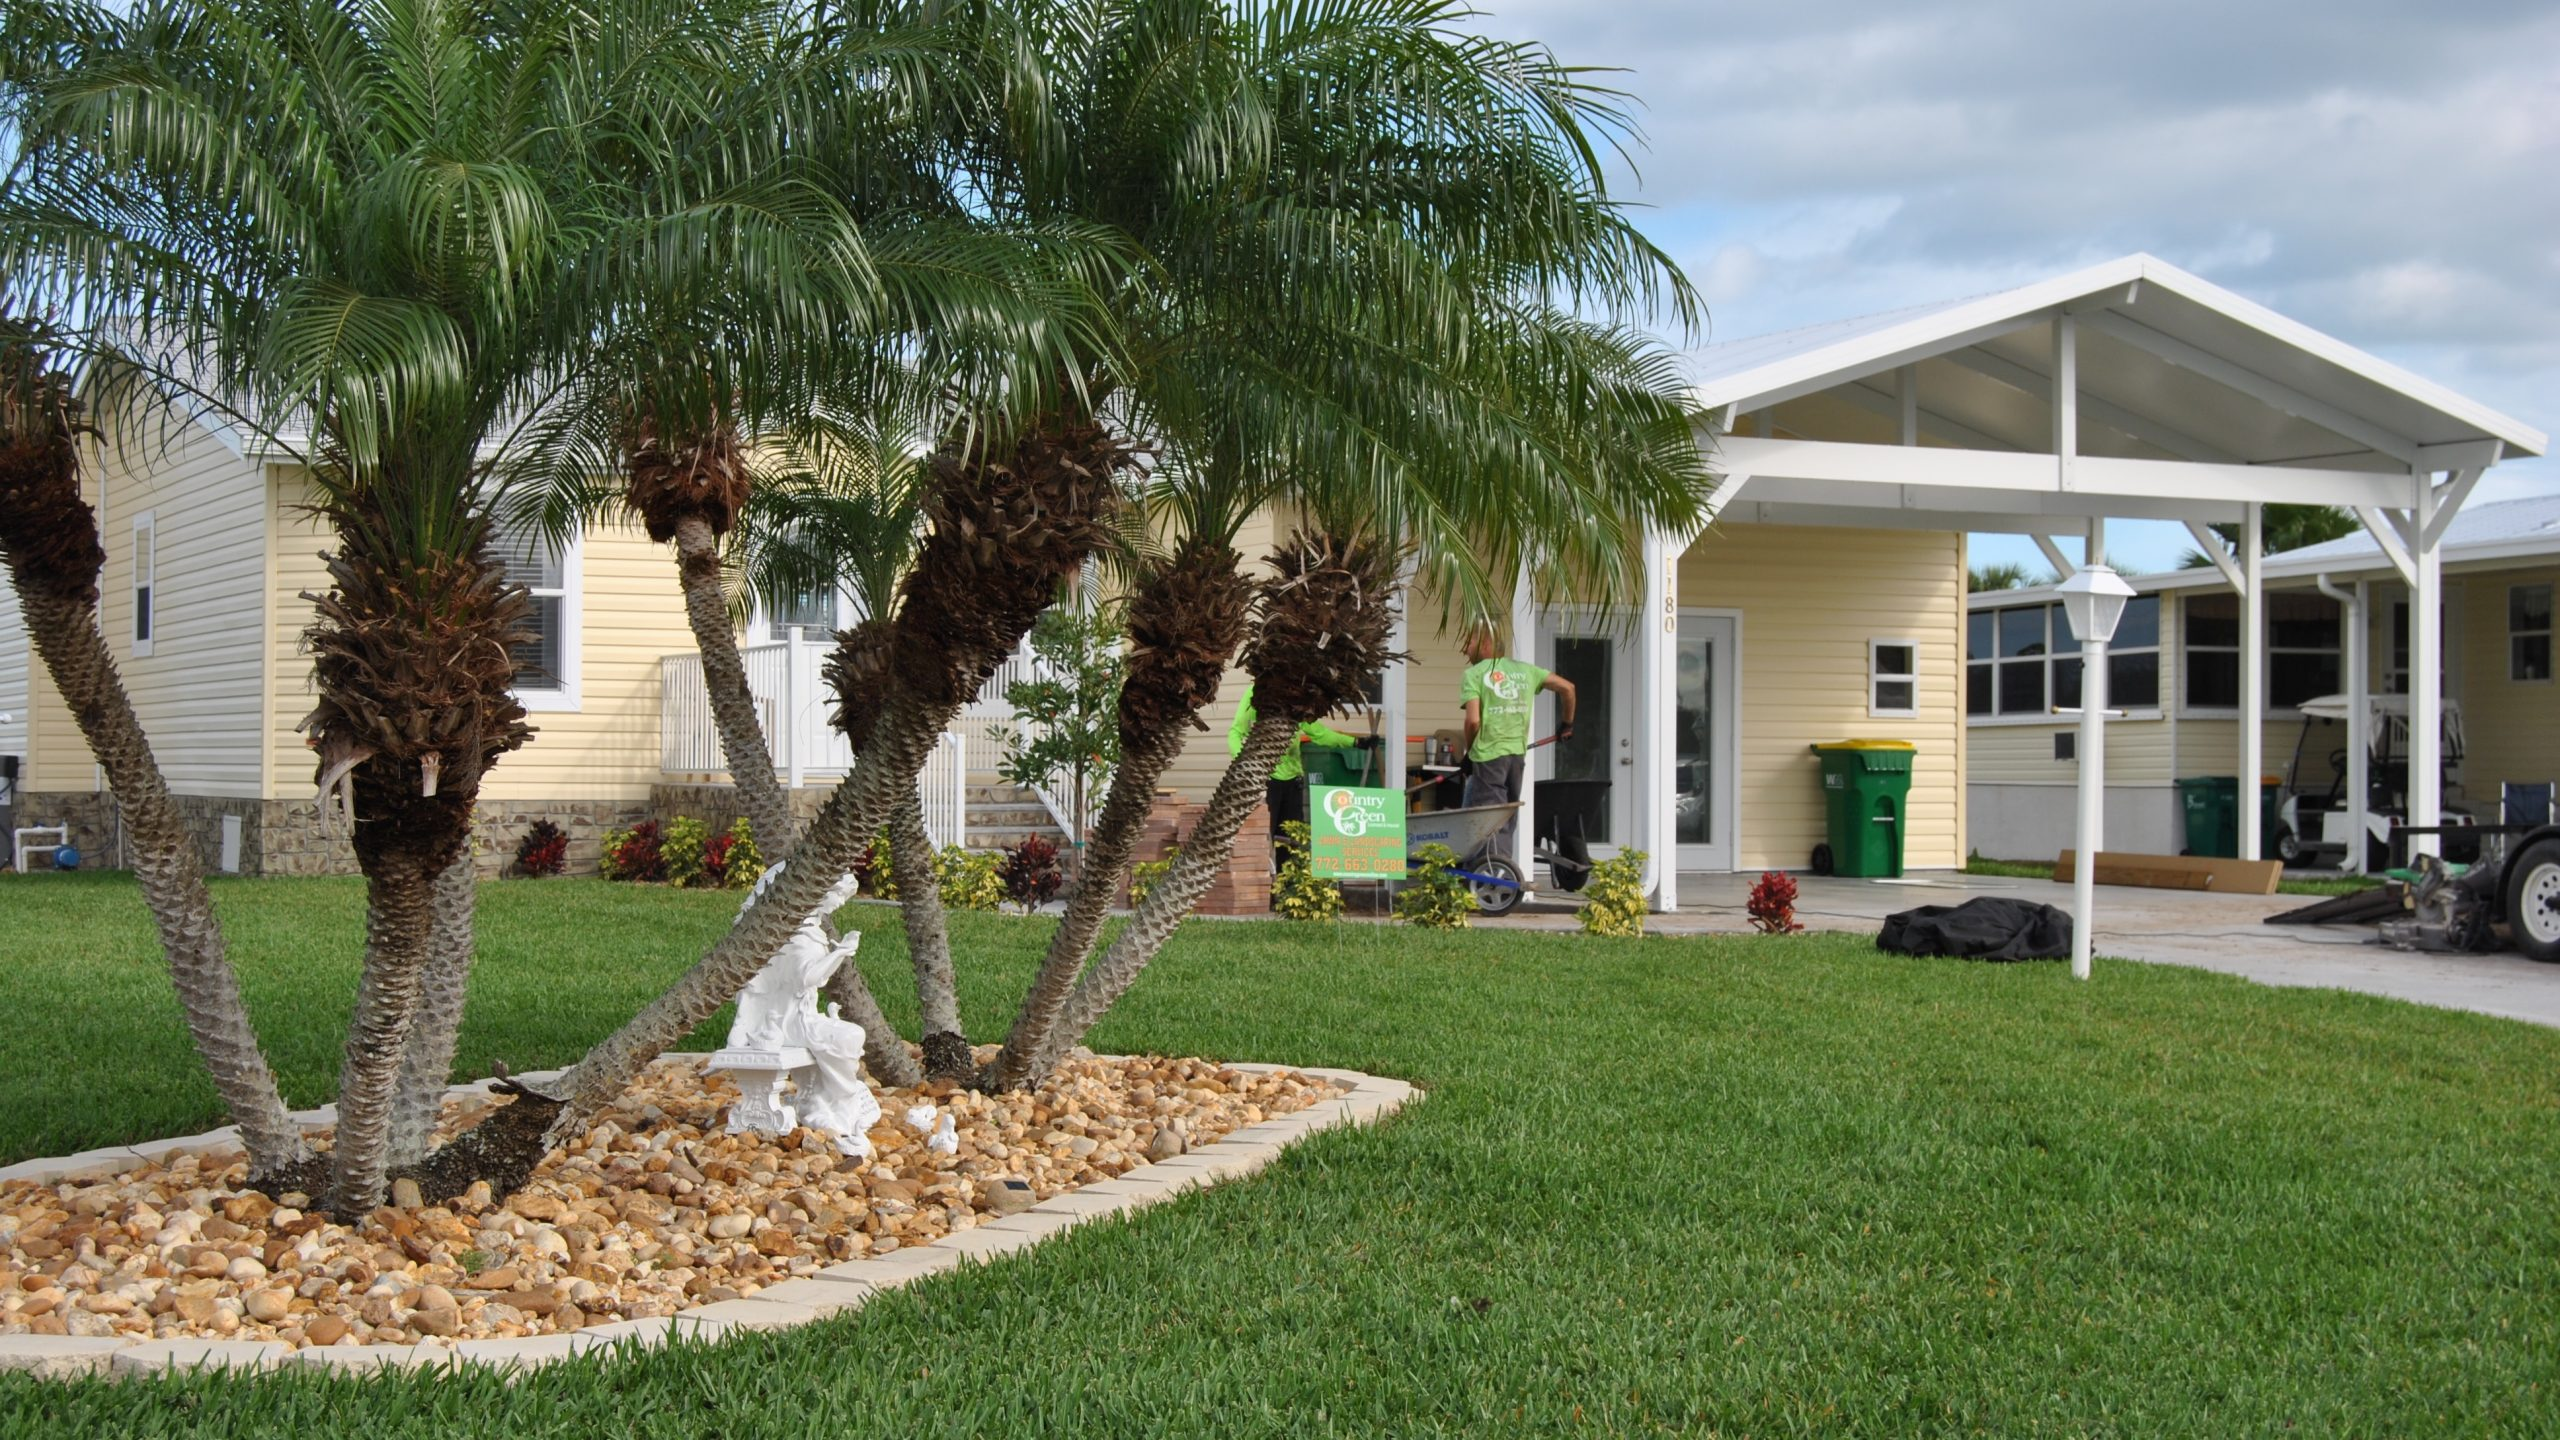 Country Green Landscaping & Lawn Service - sod, rock, mulch, shrubs, flowers, trees